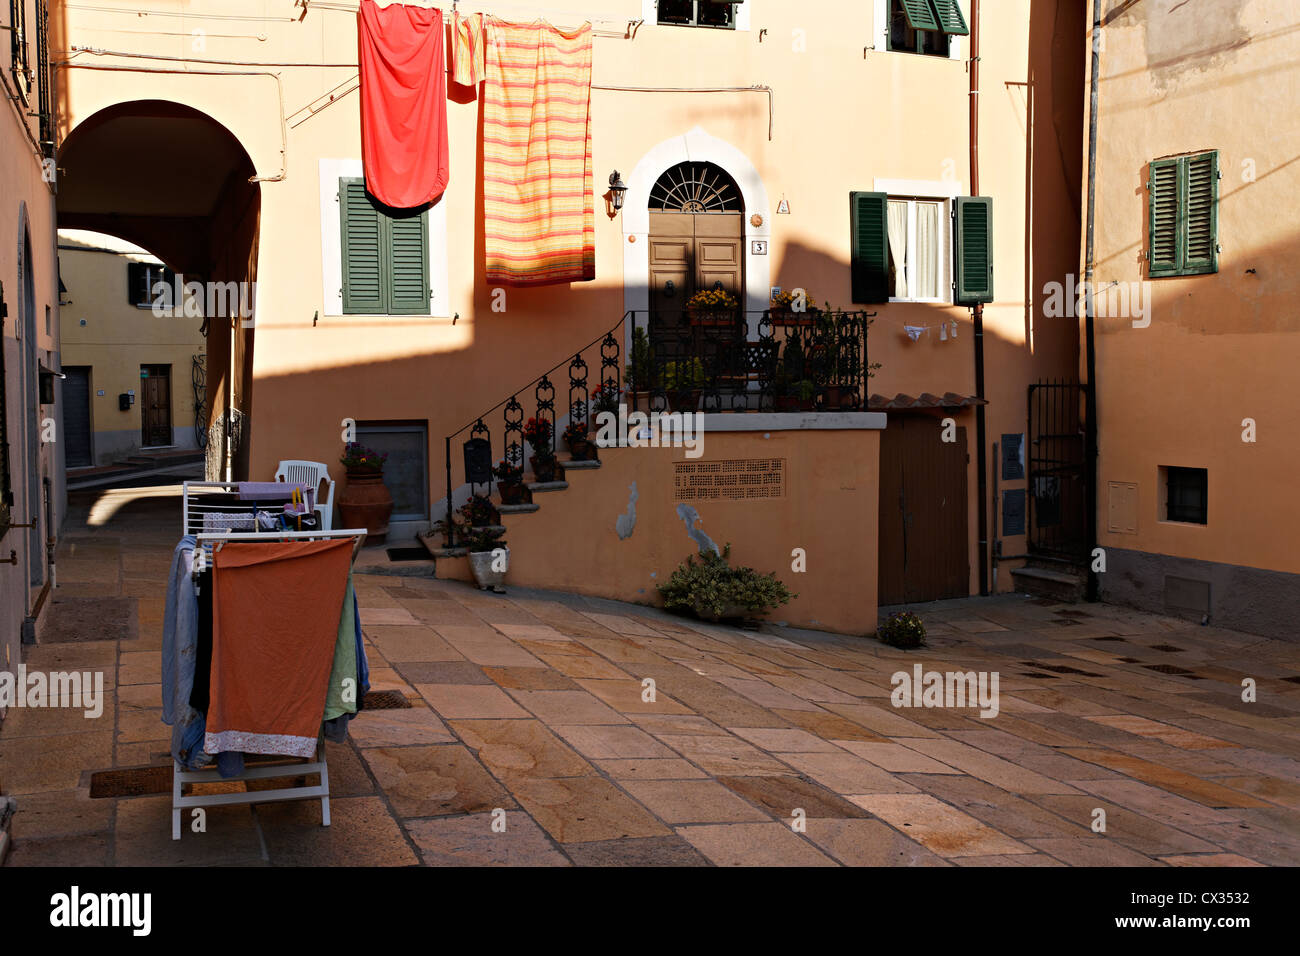 italian clothes drying stockfotos italian clothes drying bilder alamy. Black Bedroom Furniture Sets. Home Design Ideas